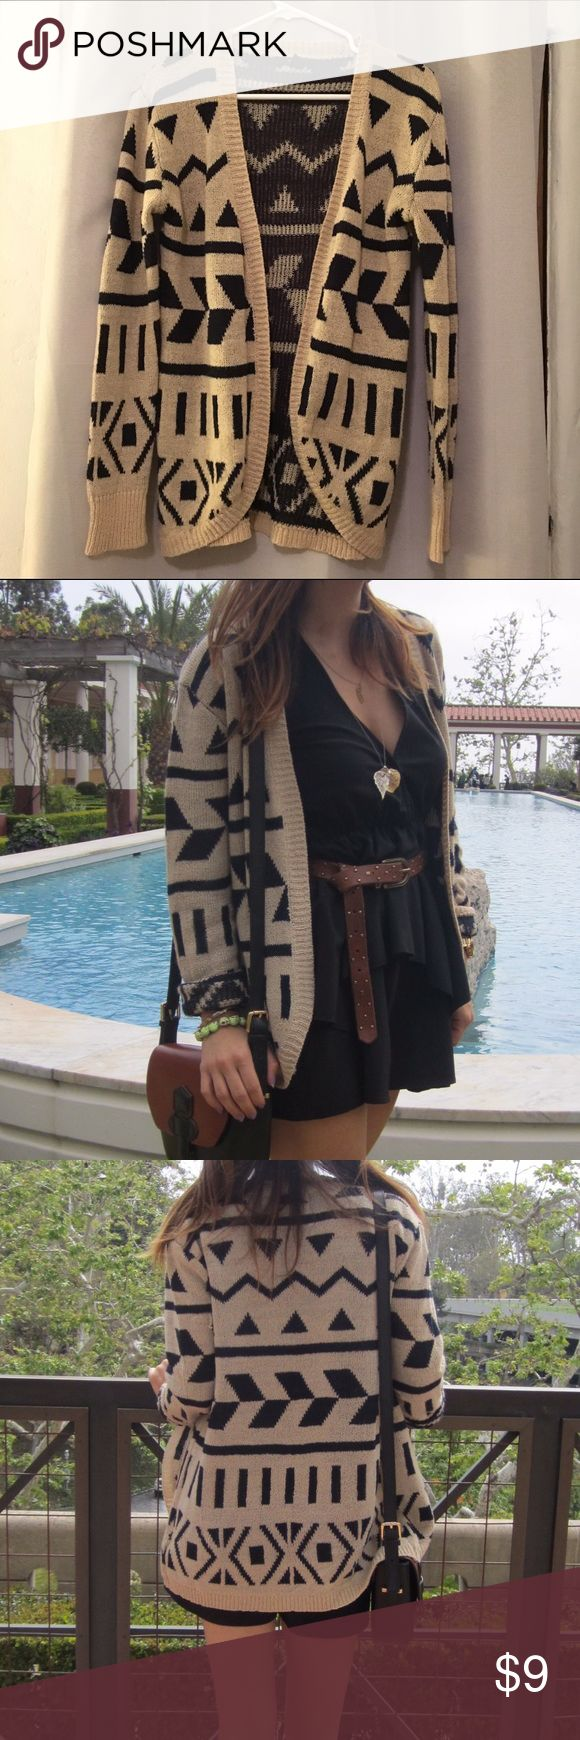 Forever 21 - tribal pattern cardigan, size S Forever 21 cardigan. Tribal print, light tan color with dark navy print. (Looks more black than navy to me.). Has 1 or 2 little snags, see pic.  Can be tied and snipped. Forever 21 Sweaters Cardigans